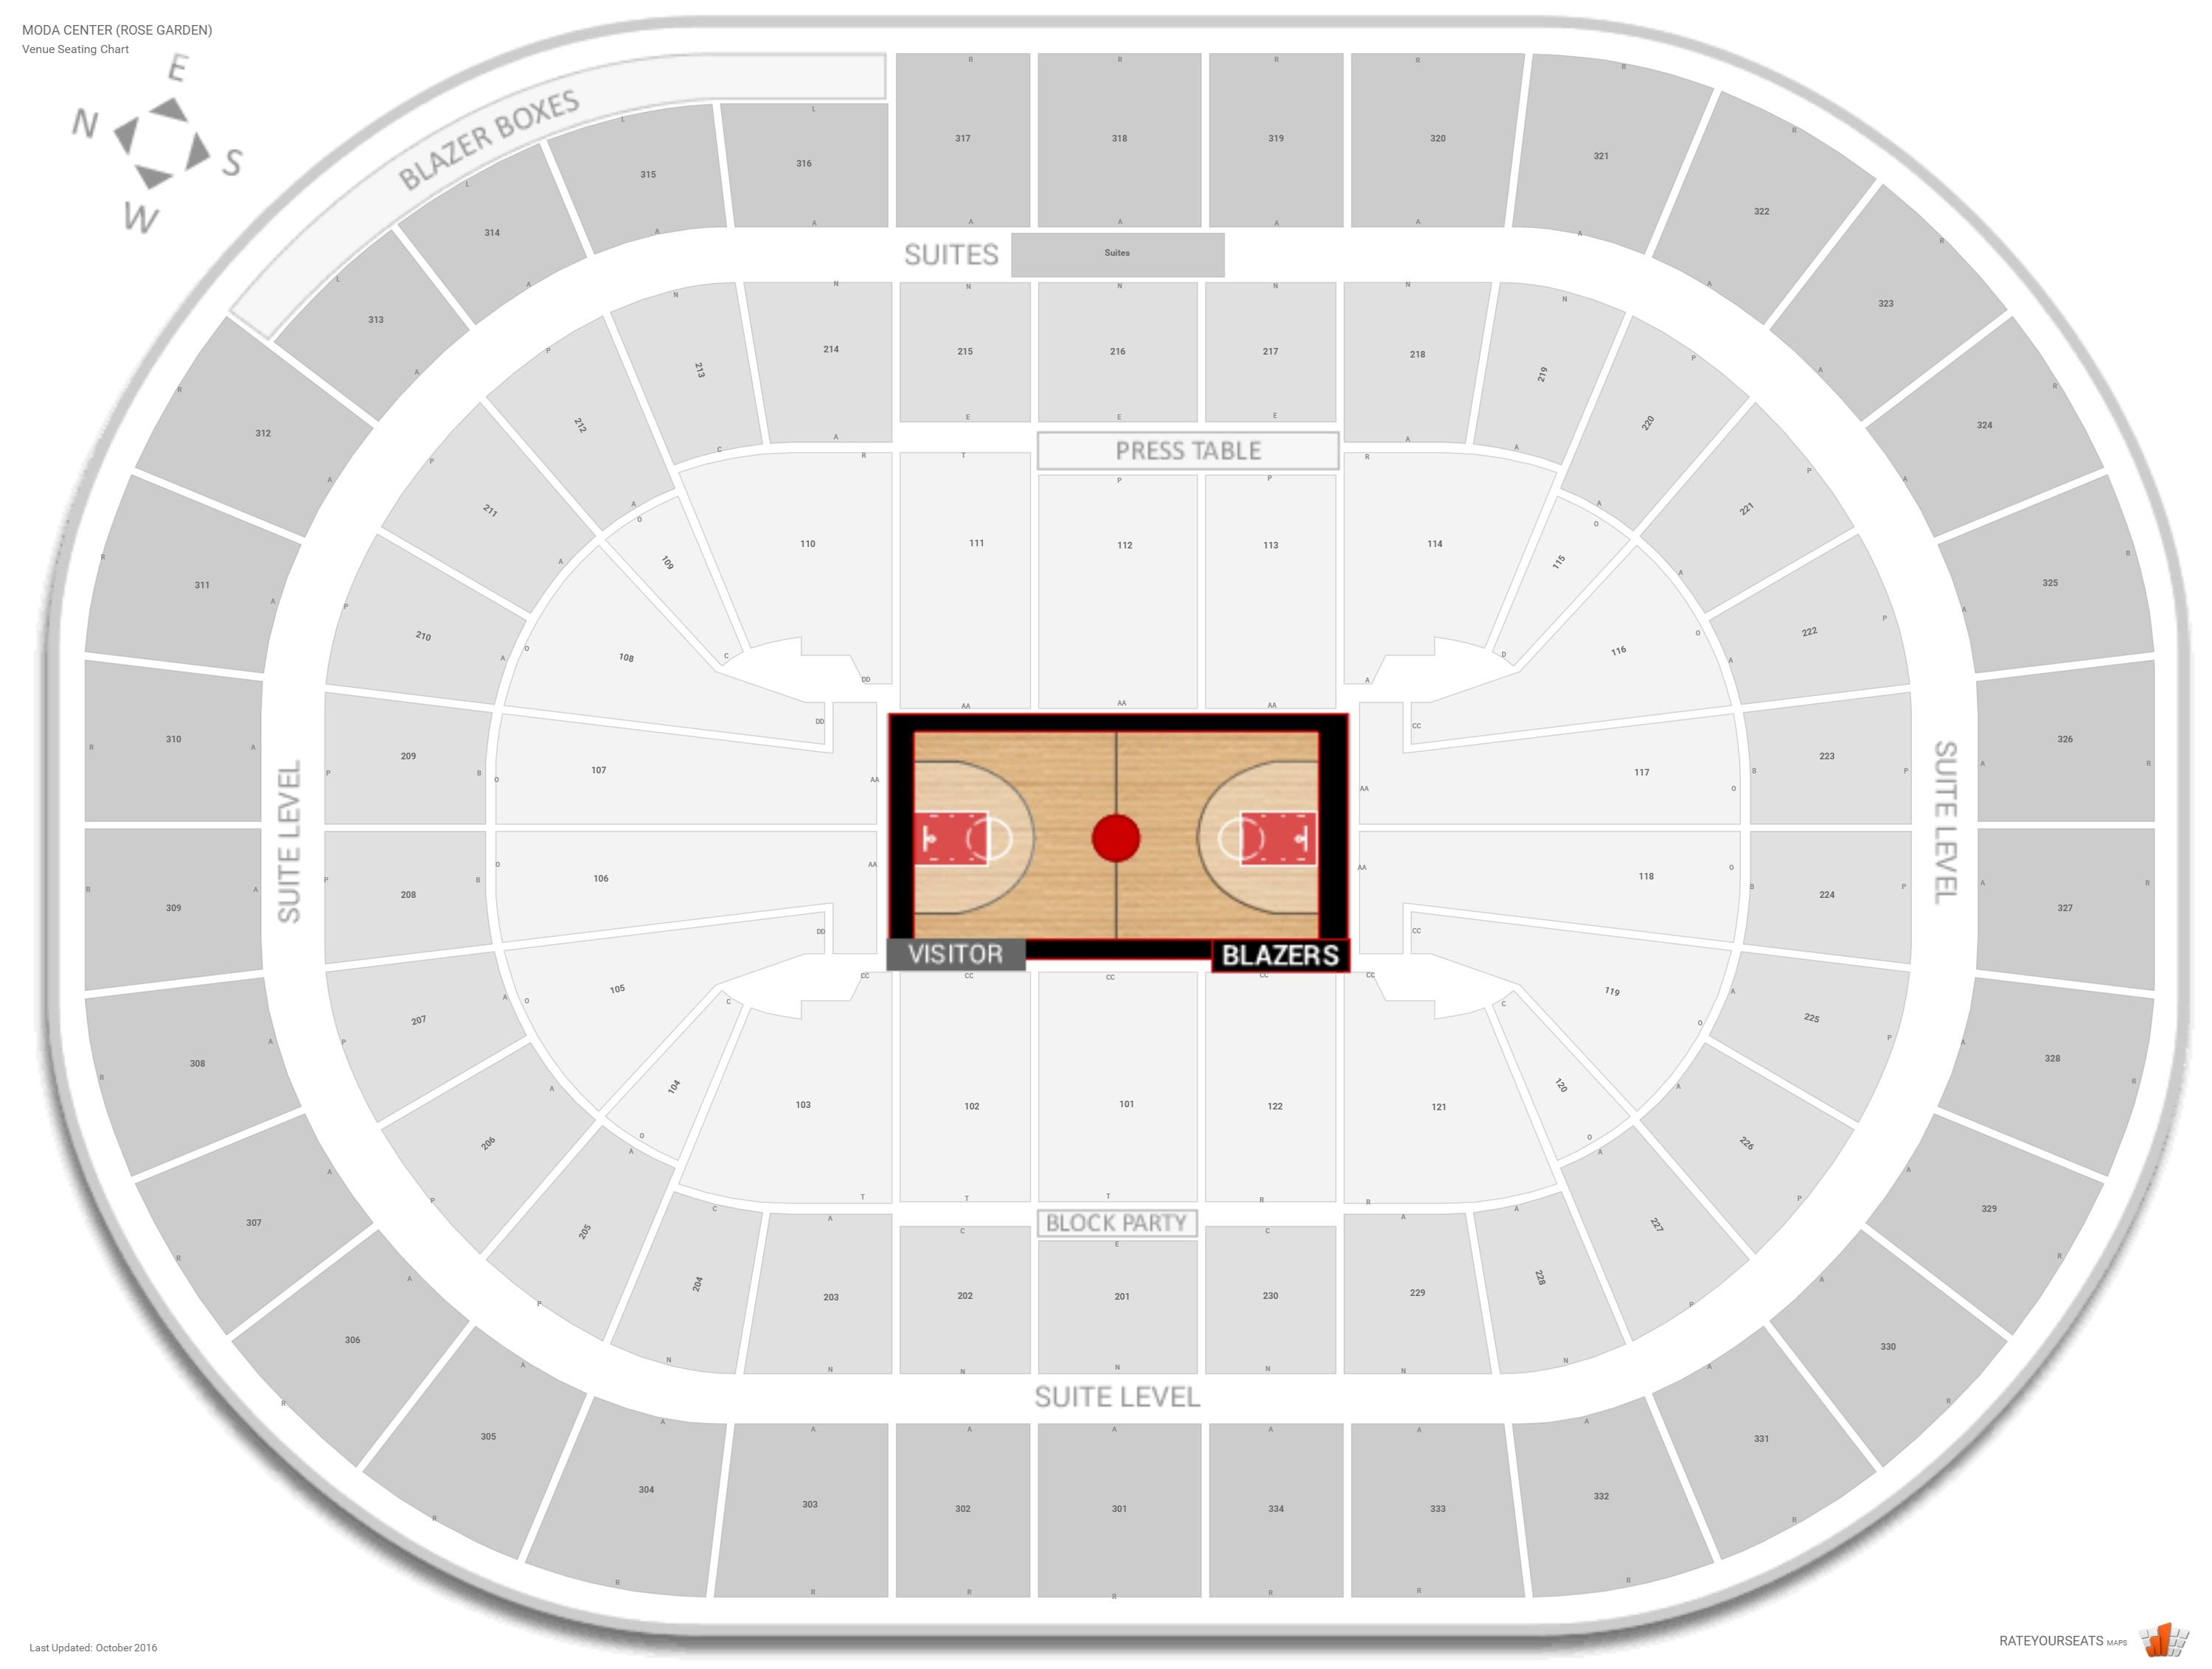 Seating Chart With Rows Moda Center Rose Garden Row Numbers